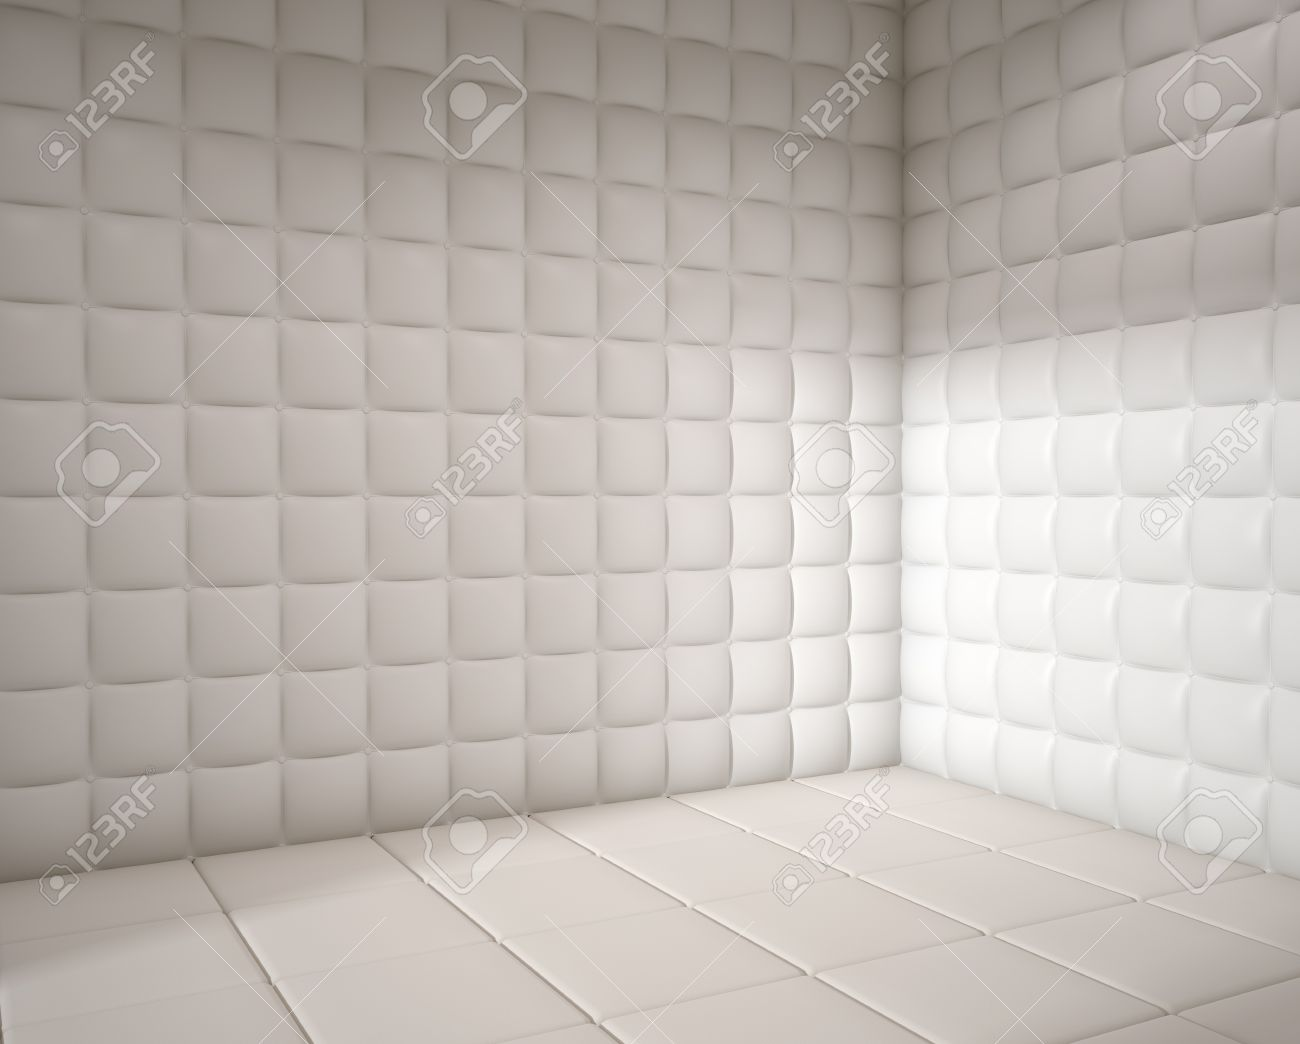 White Mental Hospital Padded Room Empty With Copy Space Stock Photo ...